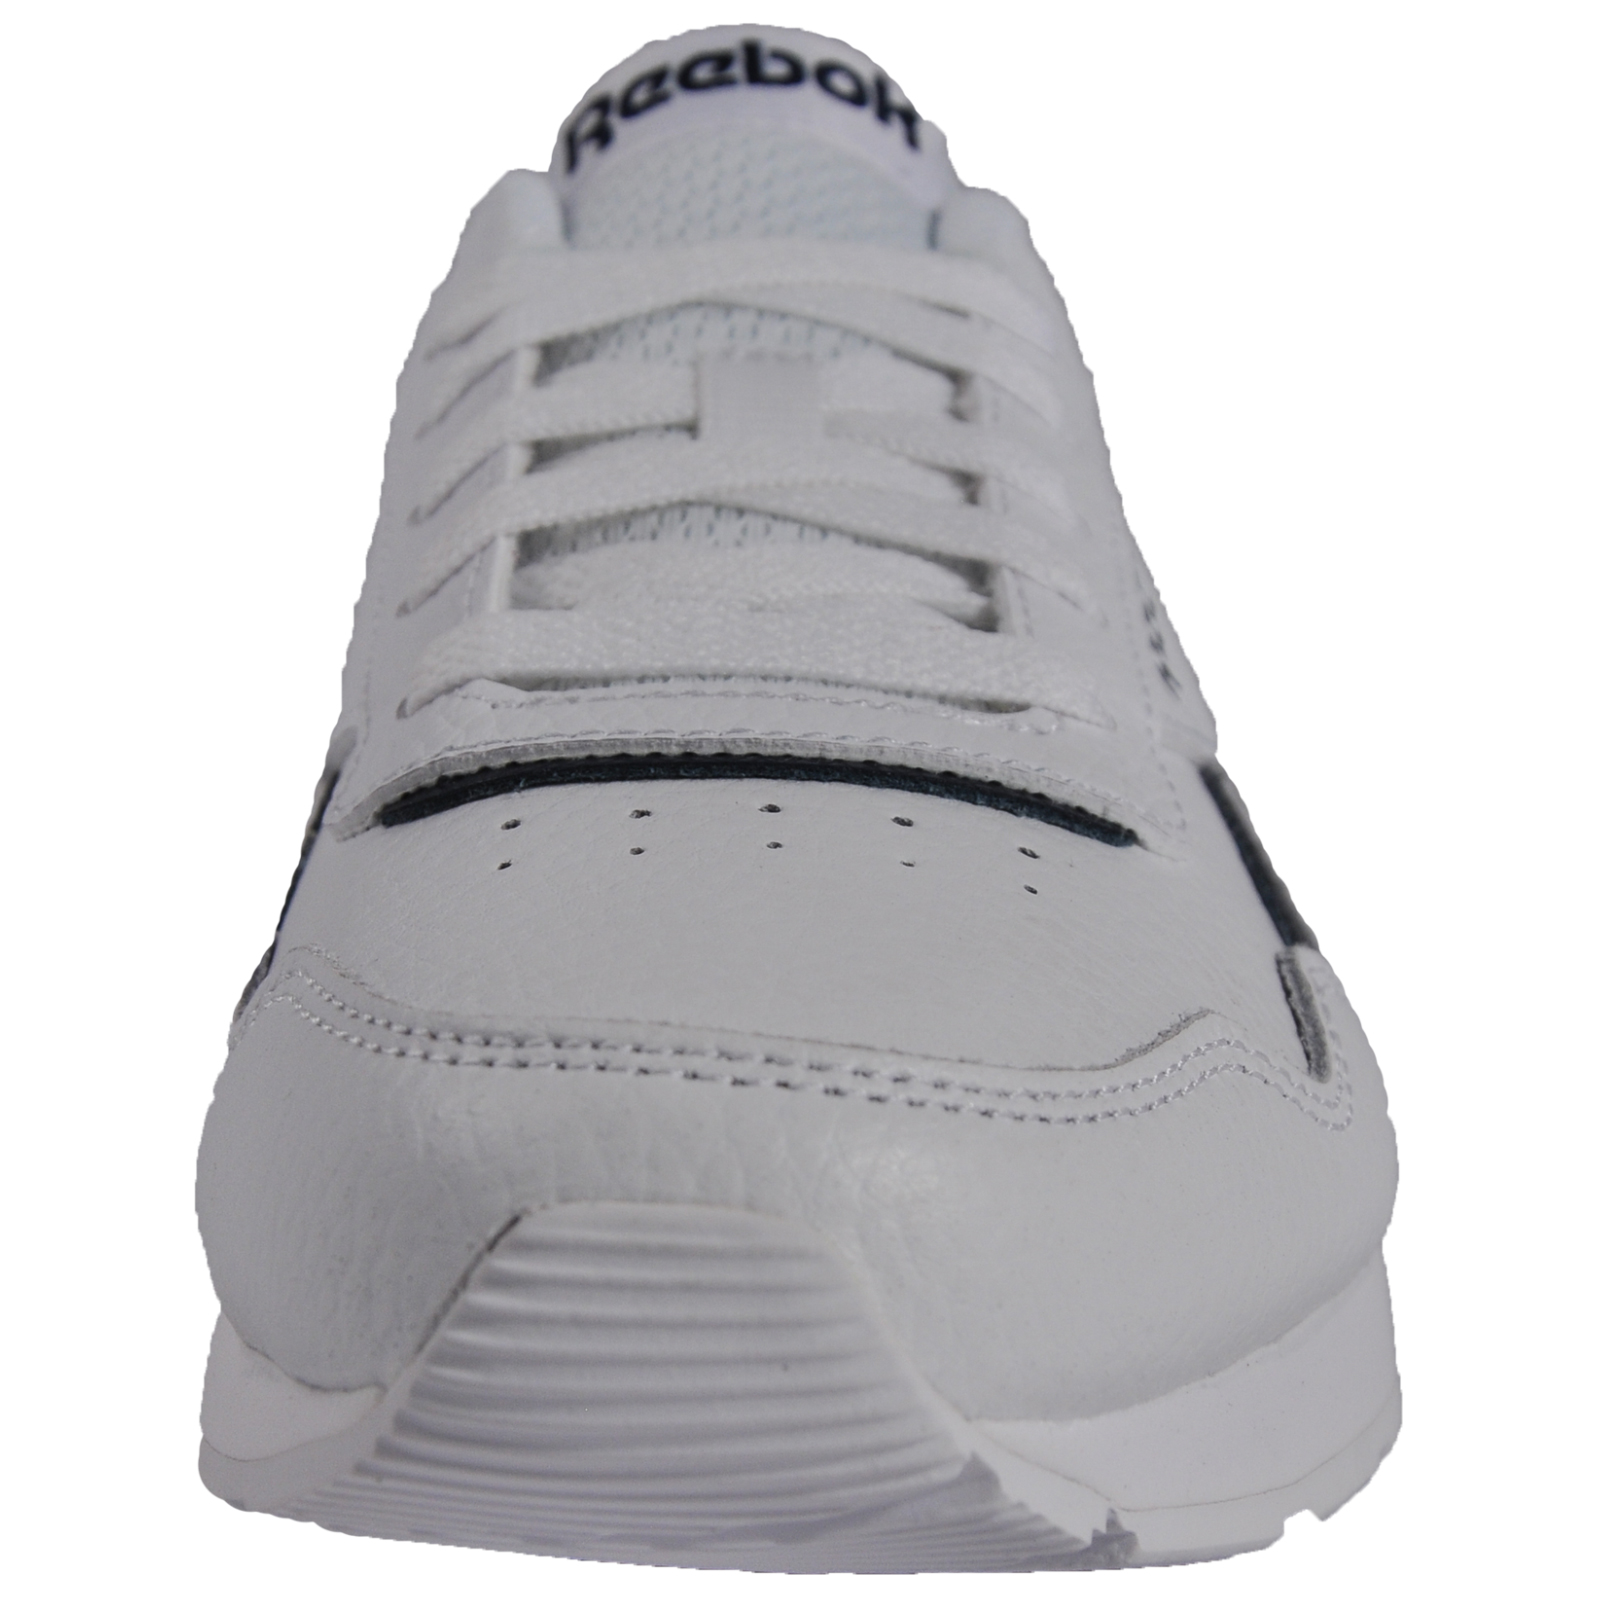 Reebok Royal Glide Mens Classic Leather Casual Fashion Sneakers Trainers Navy